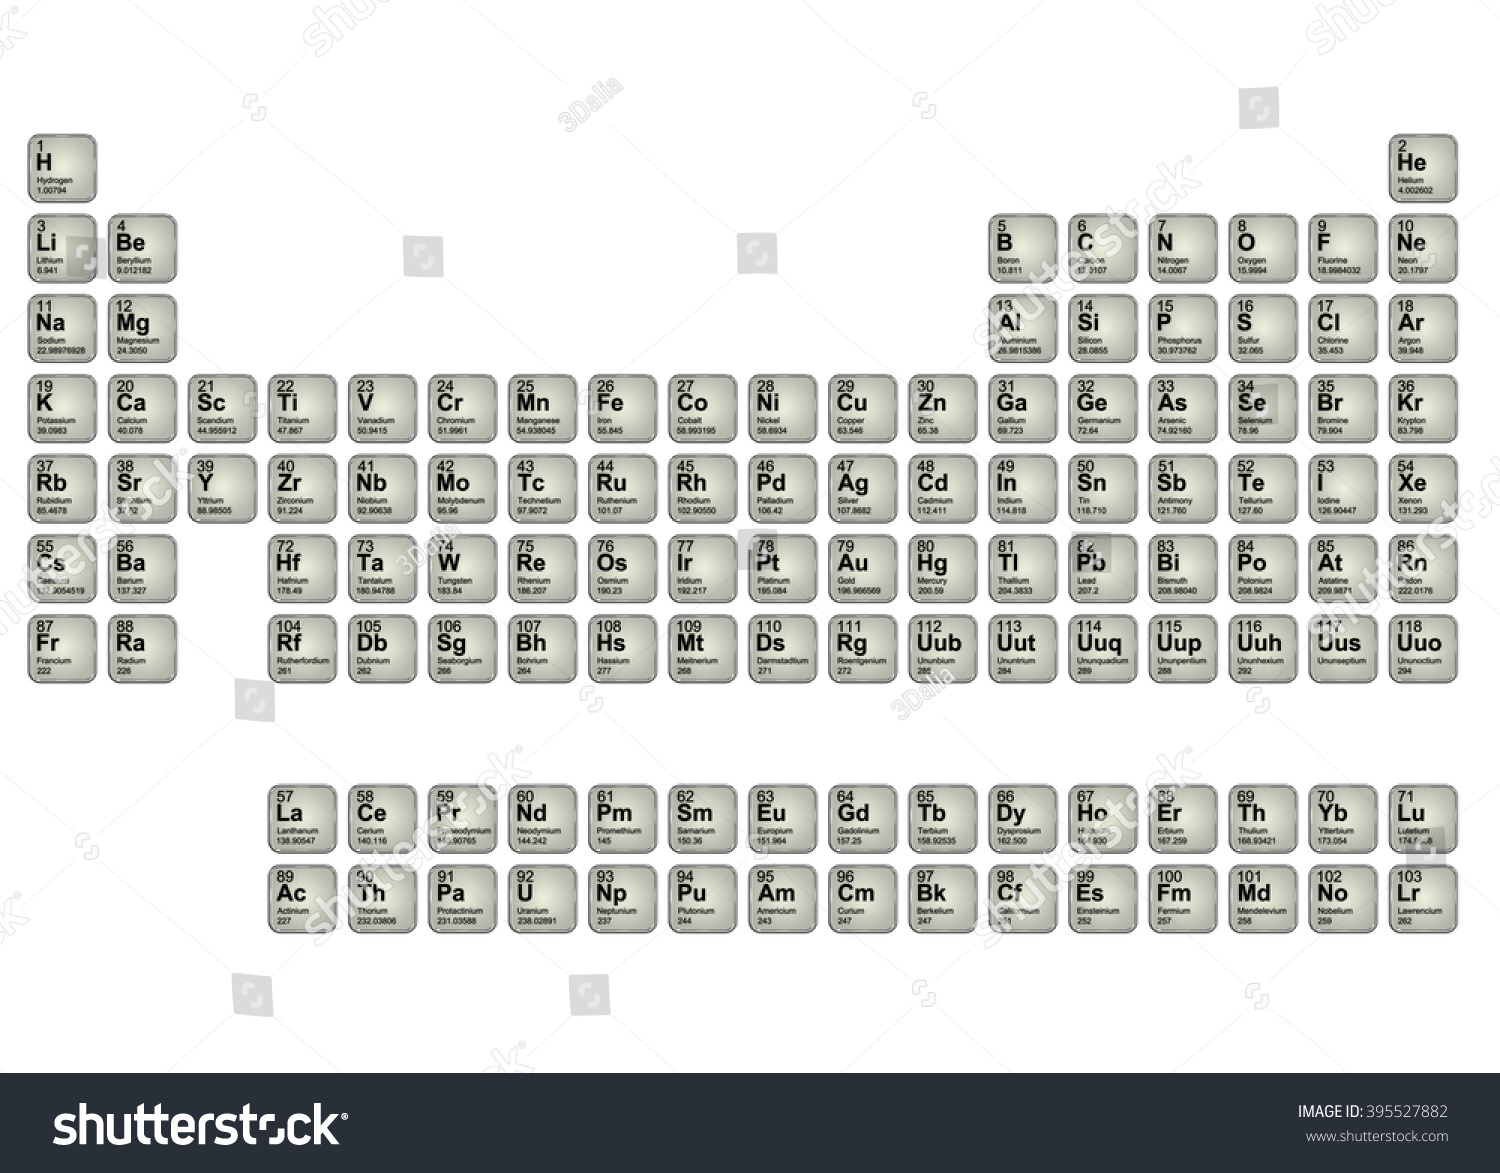 periodic elements diagram 8 foot fluorescent ballast wiring pictorial table stock illustration of the